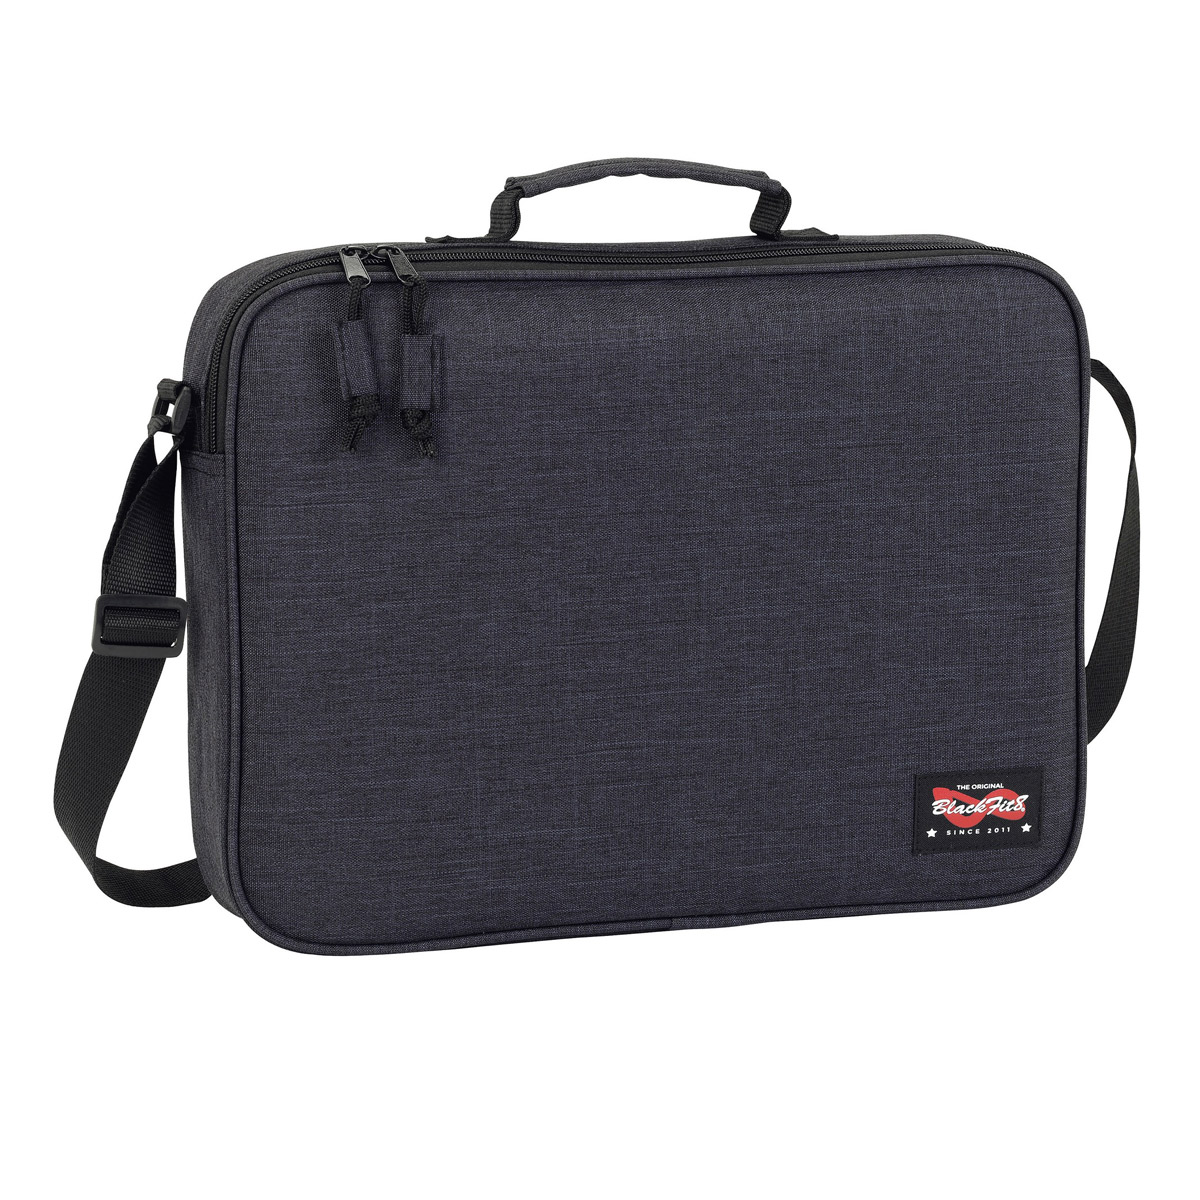 Blackfit8 Black Messenger Bag – image 1